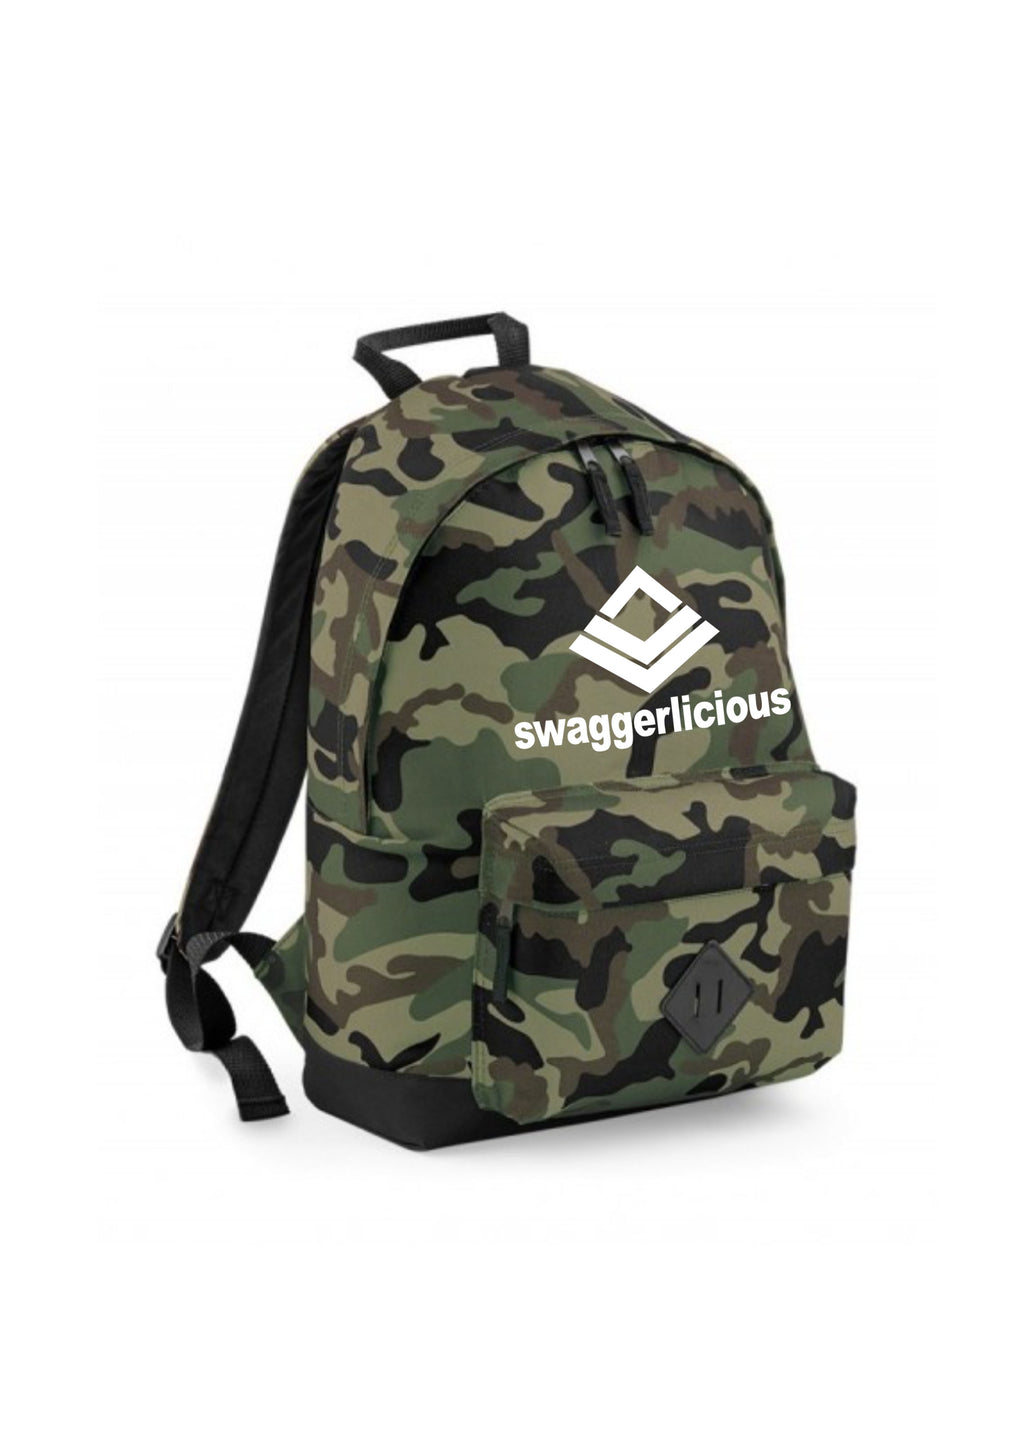 Swaggerlicious Camo Backpack - swaggerlicious-clothing.com